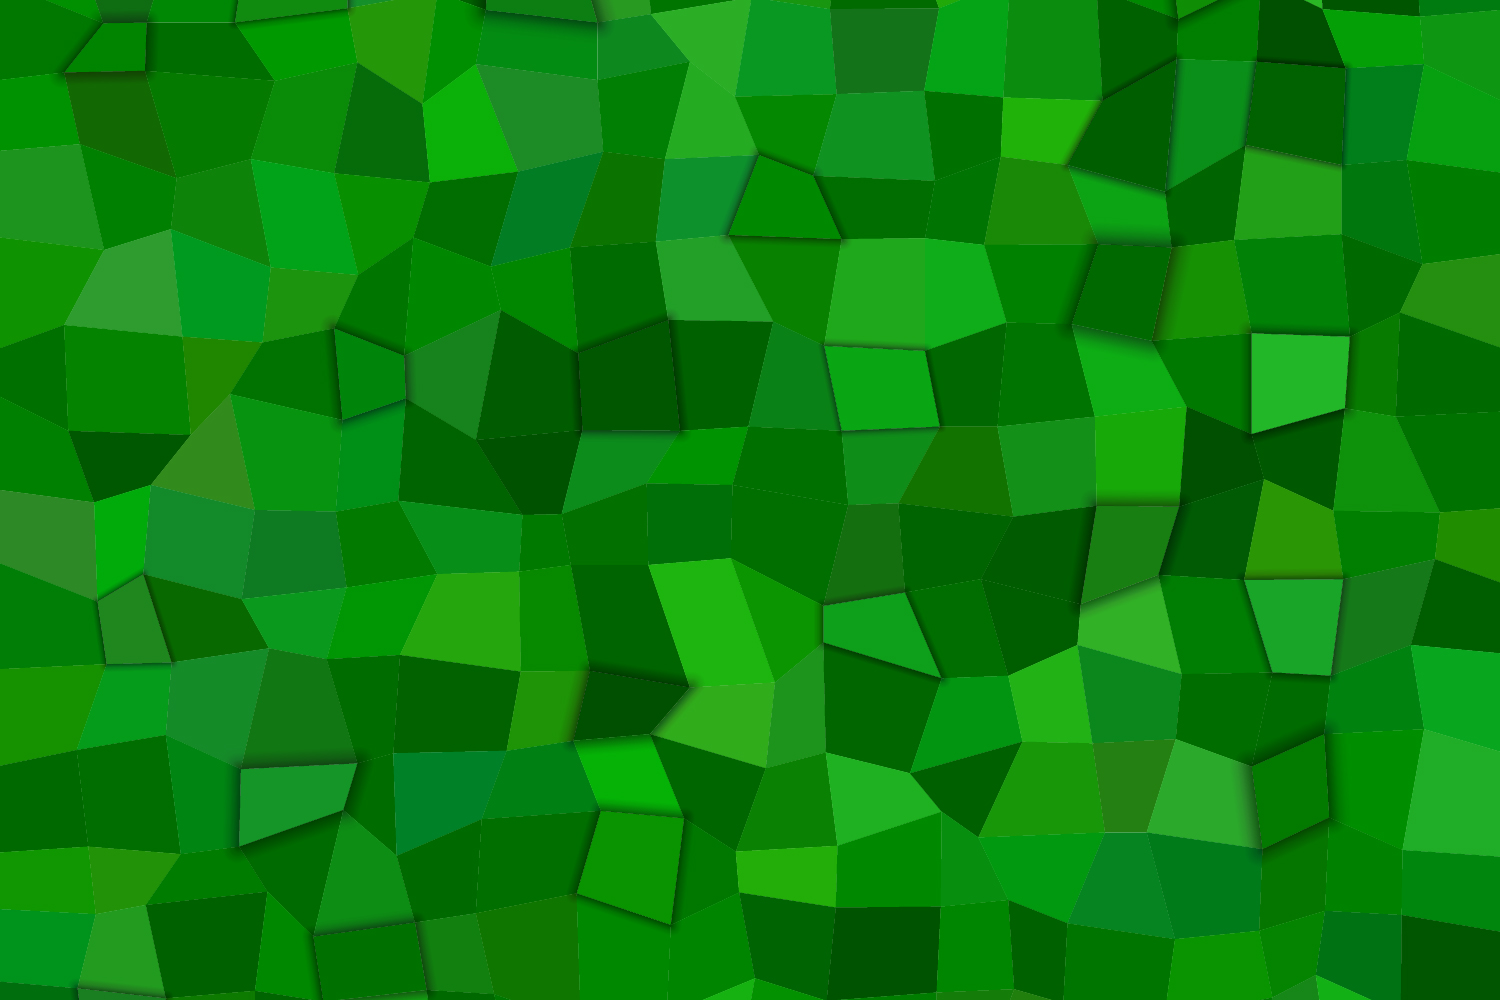 8 Green 3D Rectangle Backgrounds (AI, EPS, JPG 5000x5000) example image 3